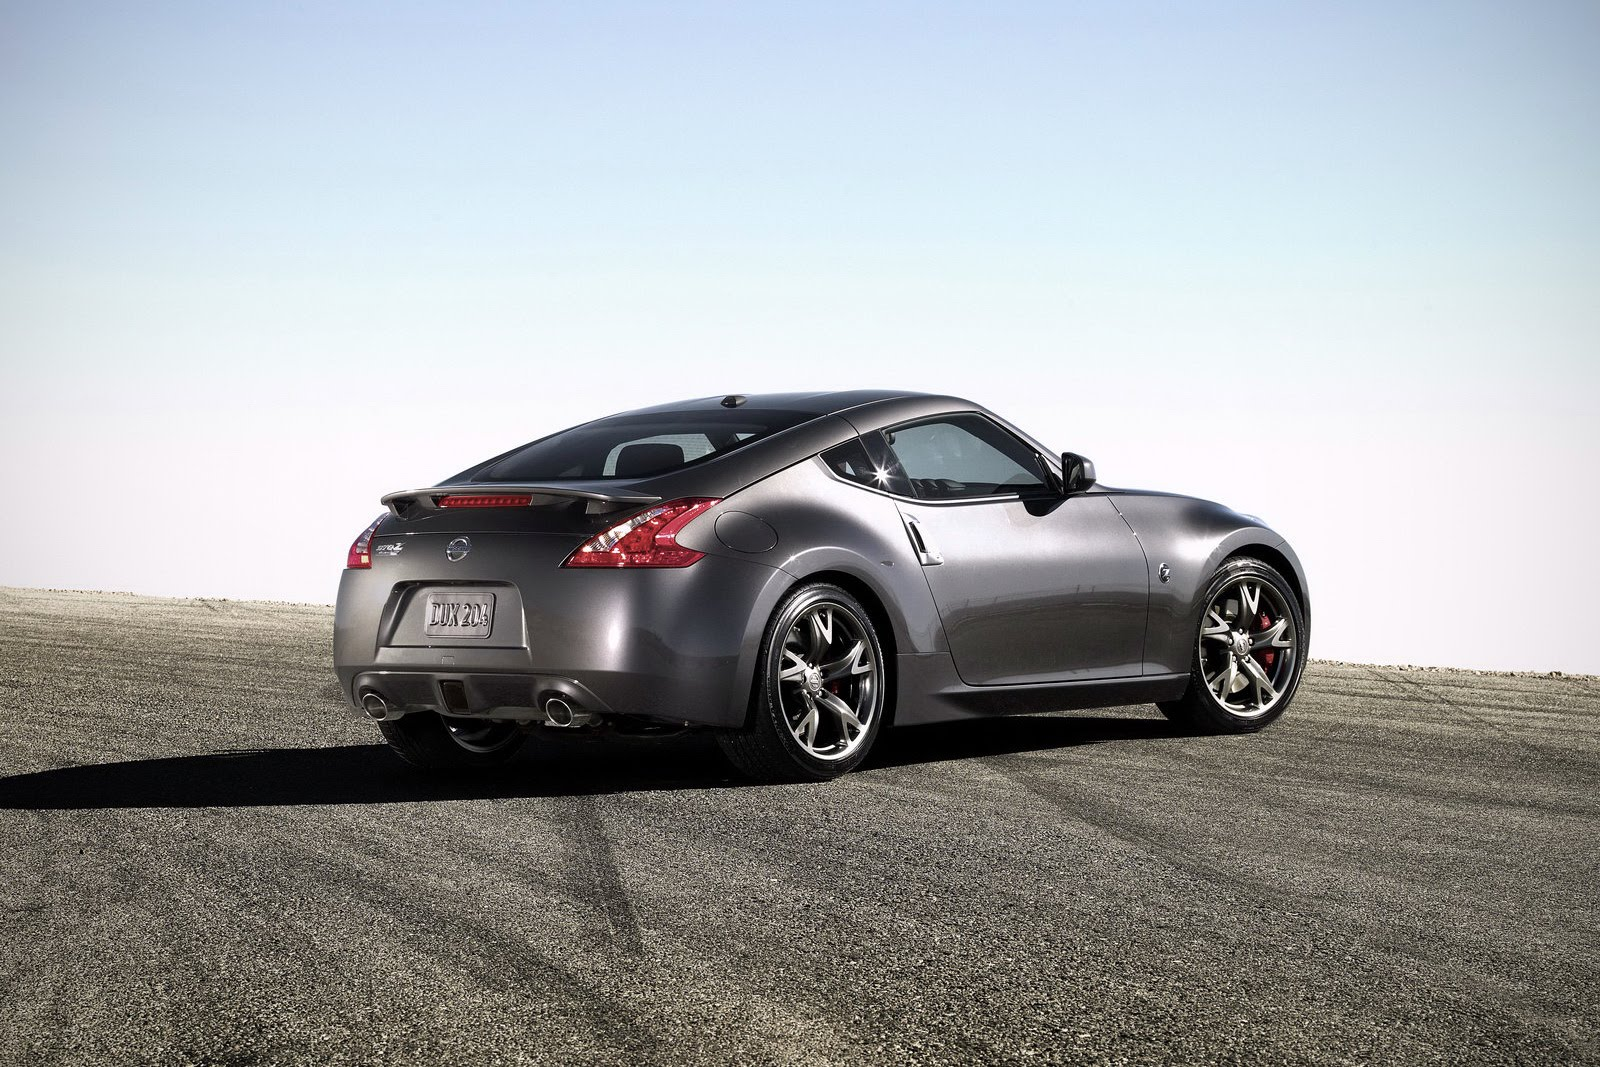 Nissan 370z Fairlady Z Pictures and Wallpapers 1600x1067